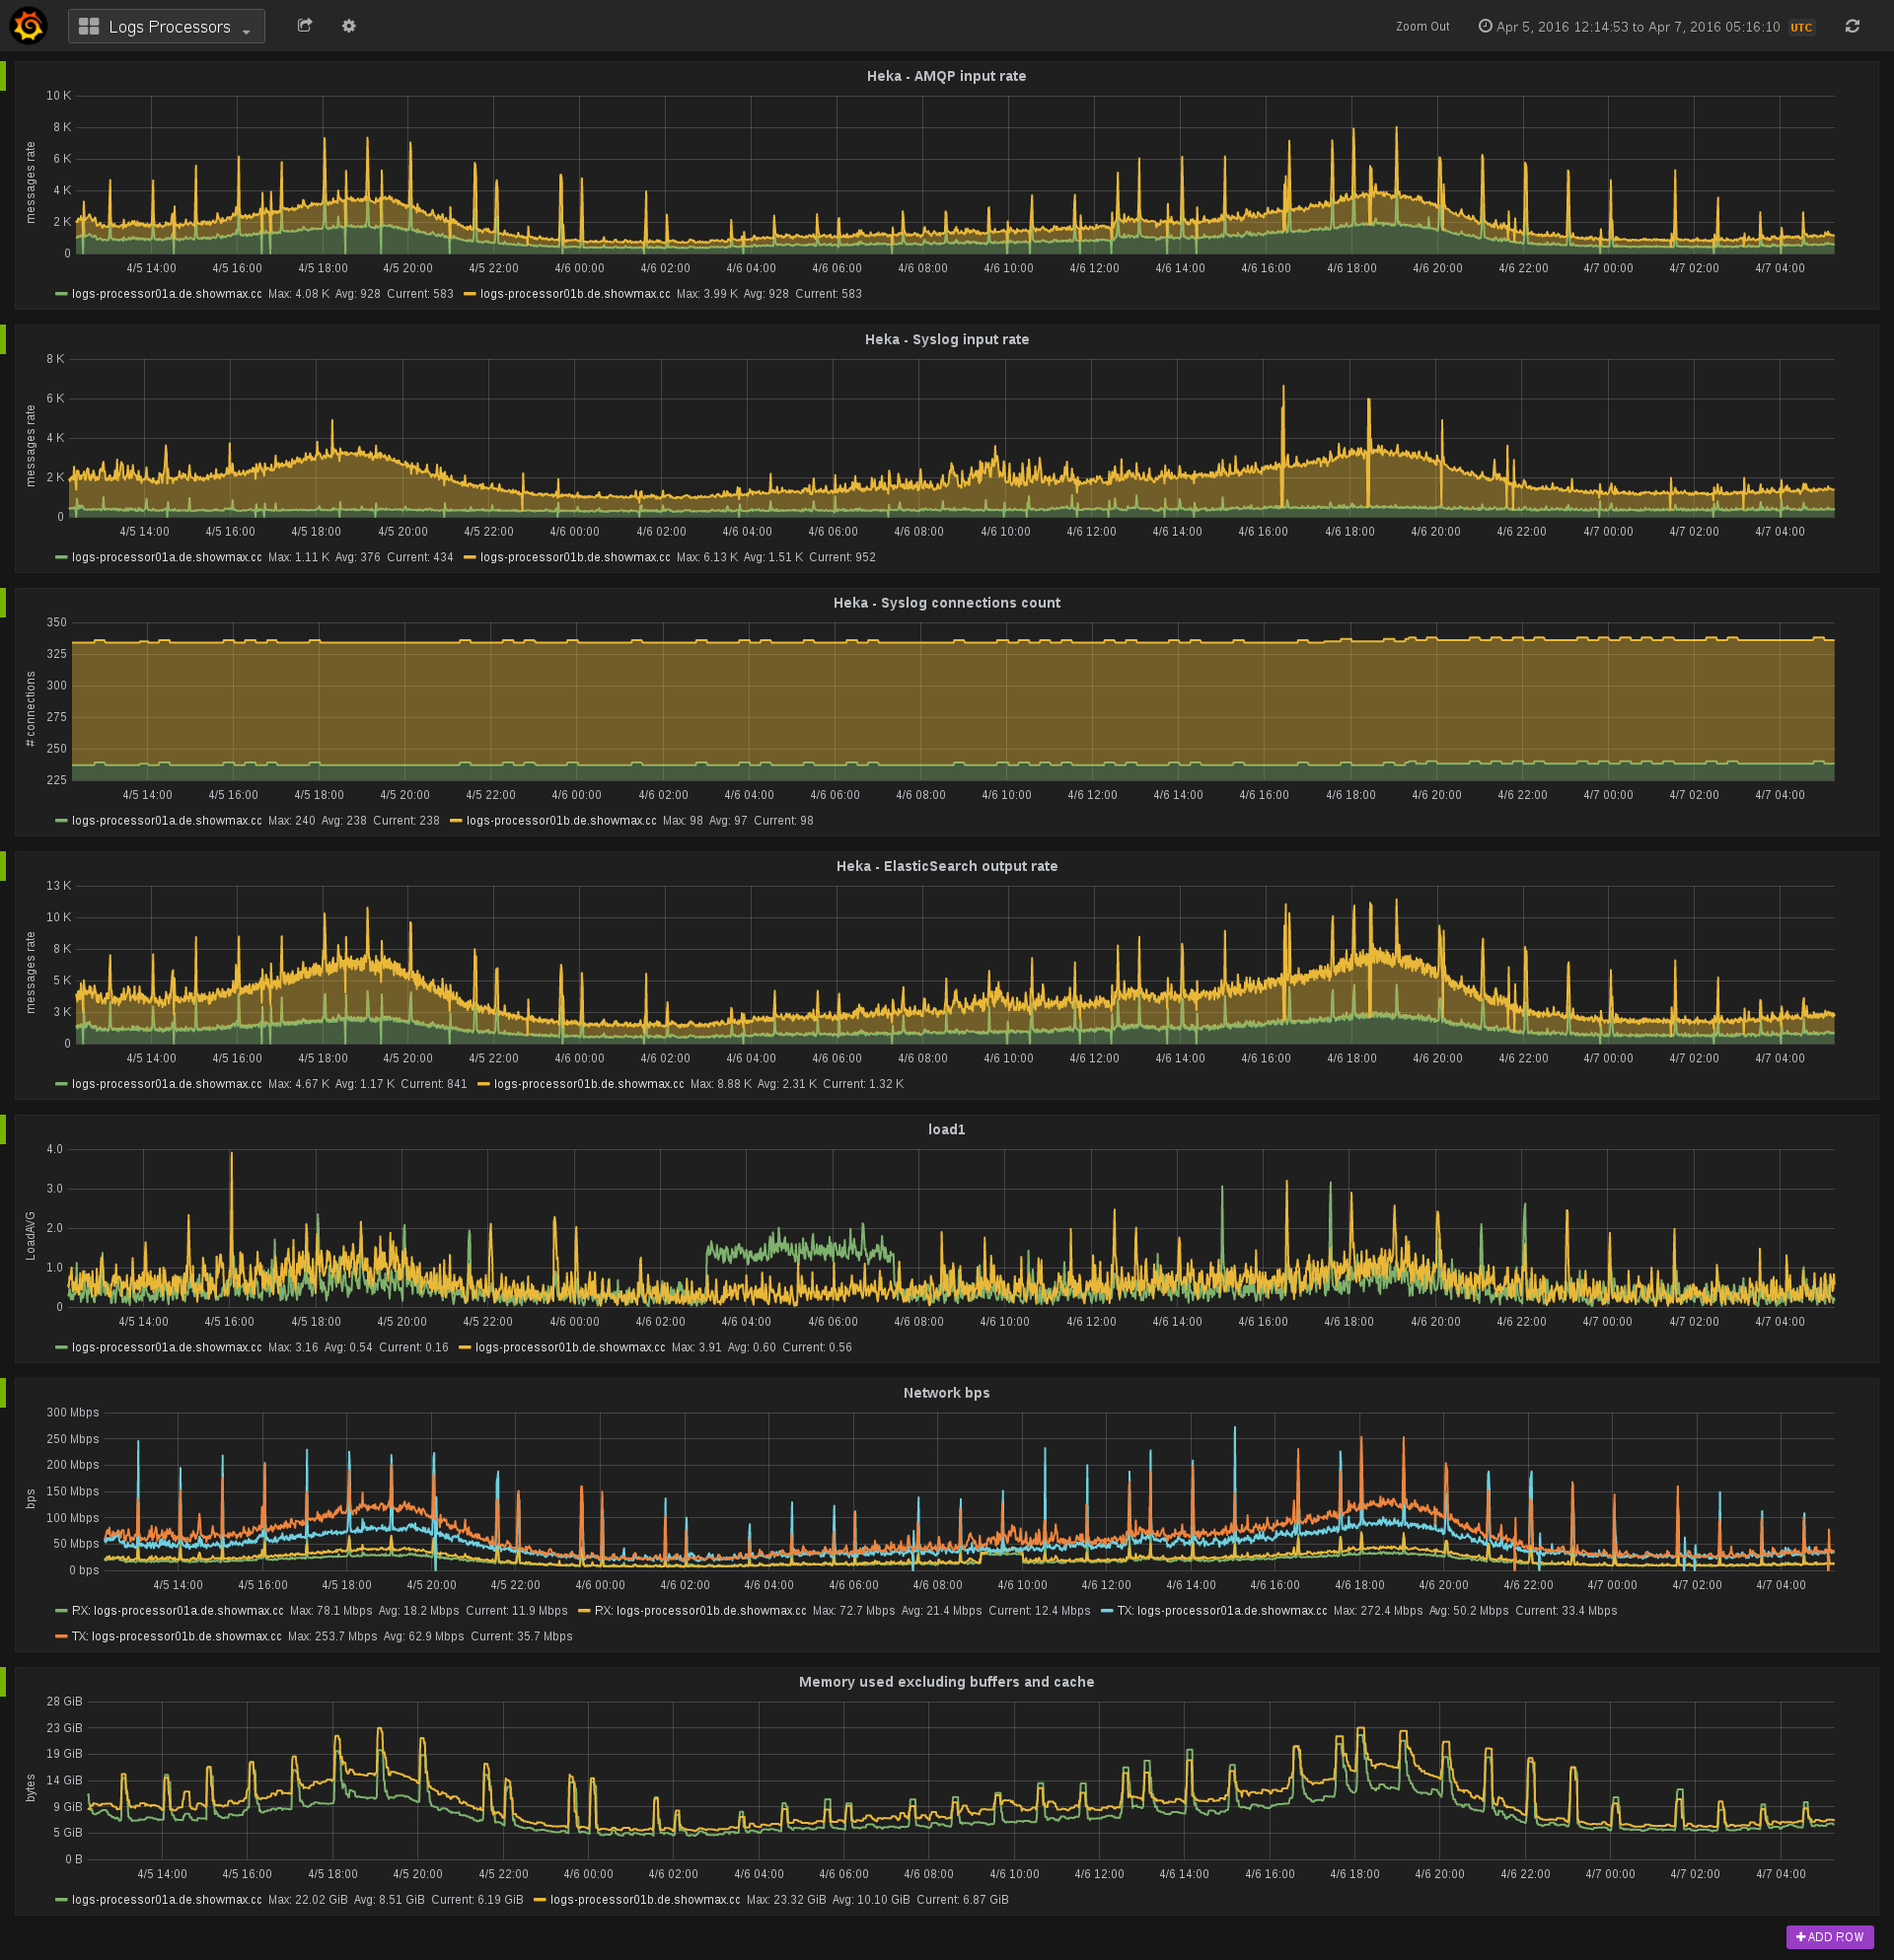 Grafana dashboard showing April 5th 2016 log processors traffic.